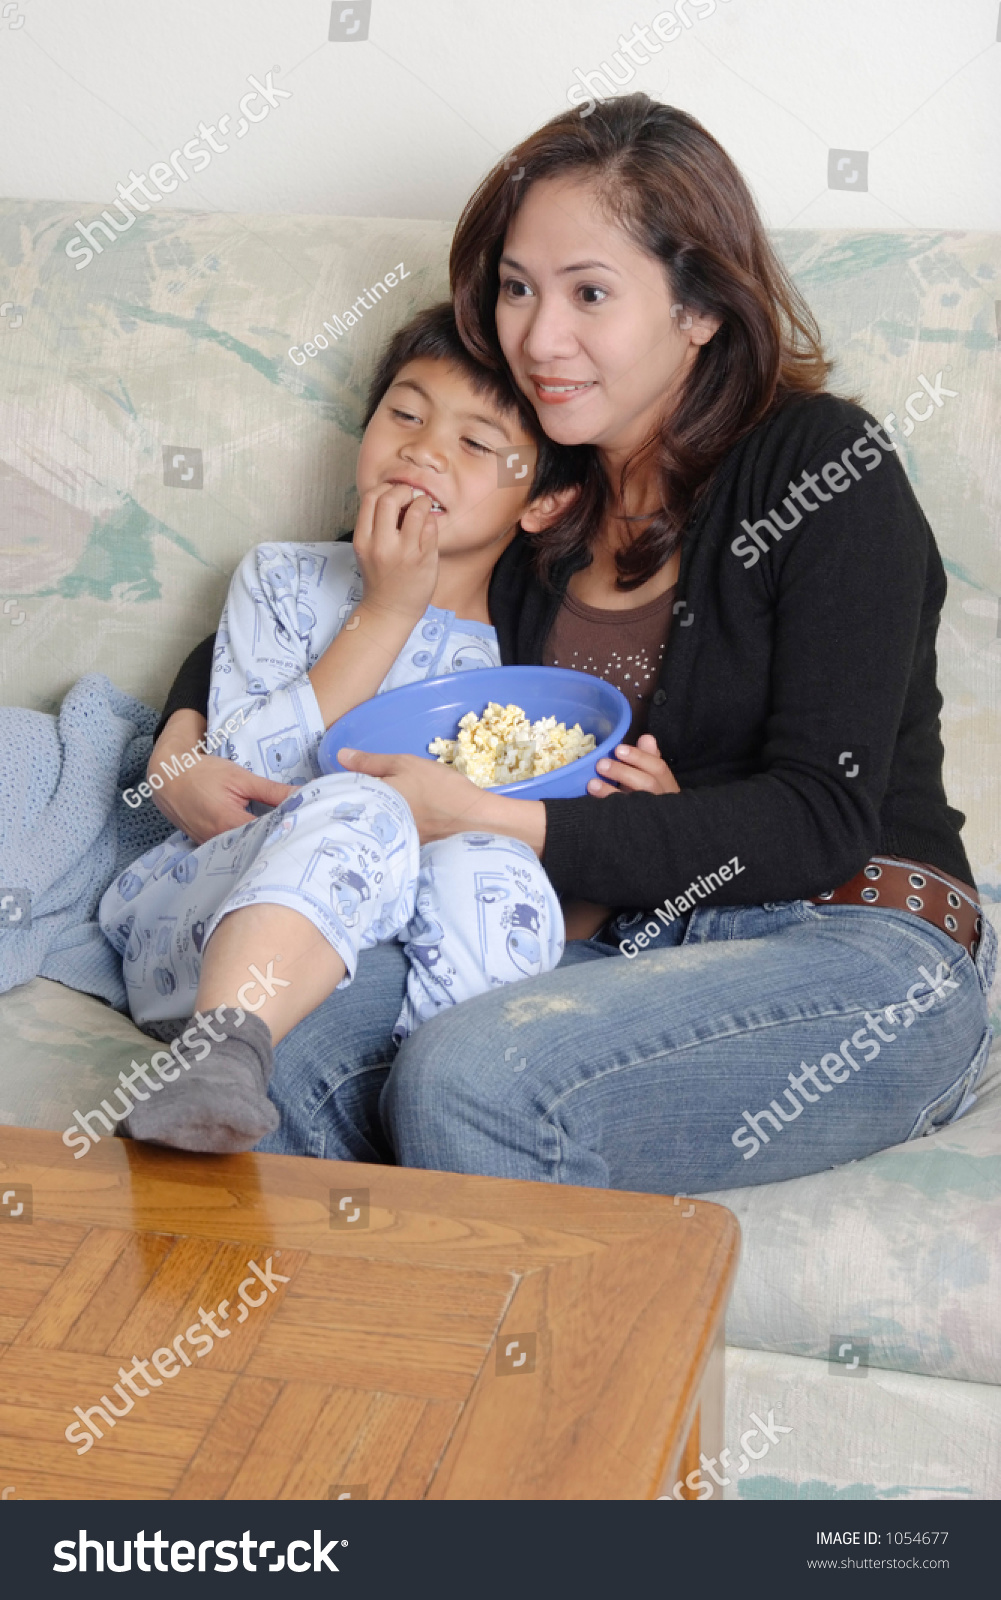 Watch Mom In Bedroom Camera: Mom Son Watching Movie Together Stock Photo 1054677